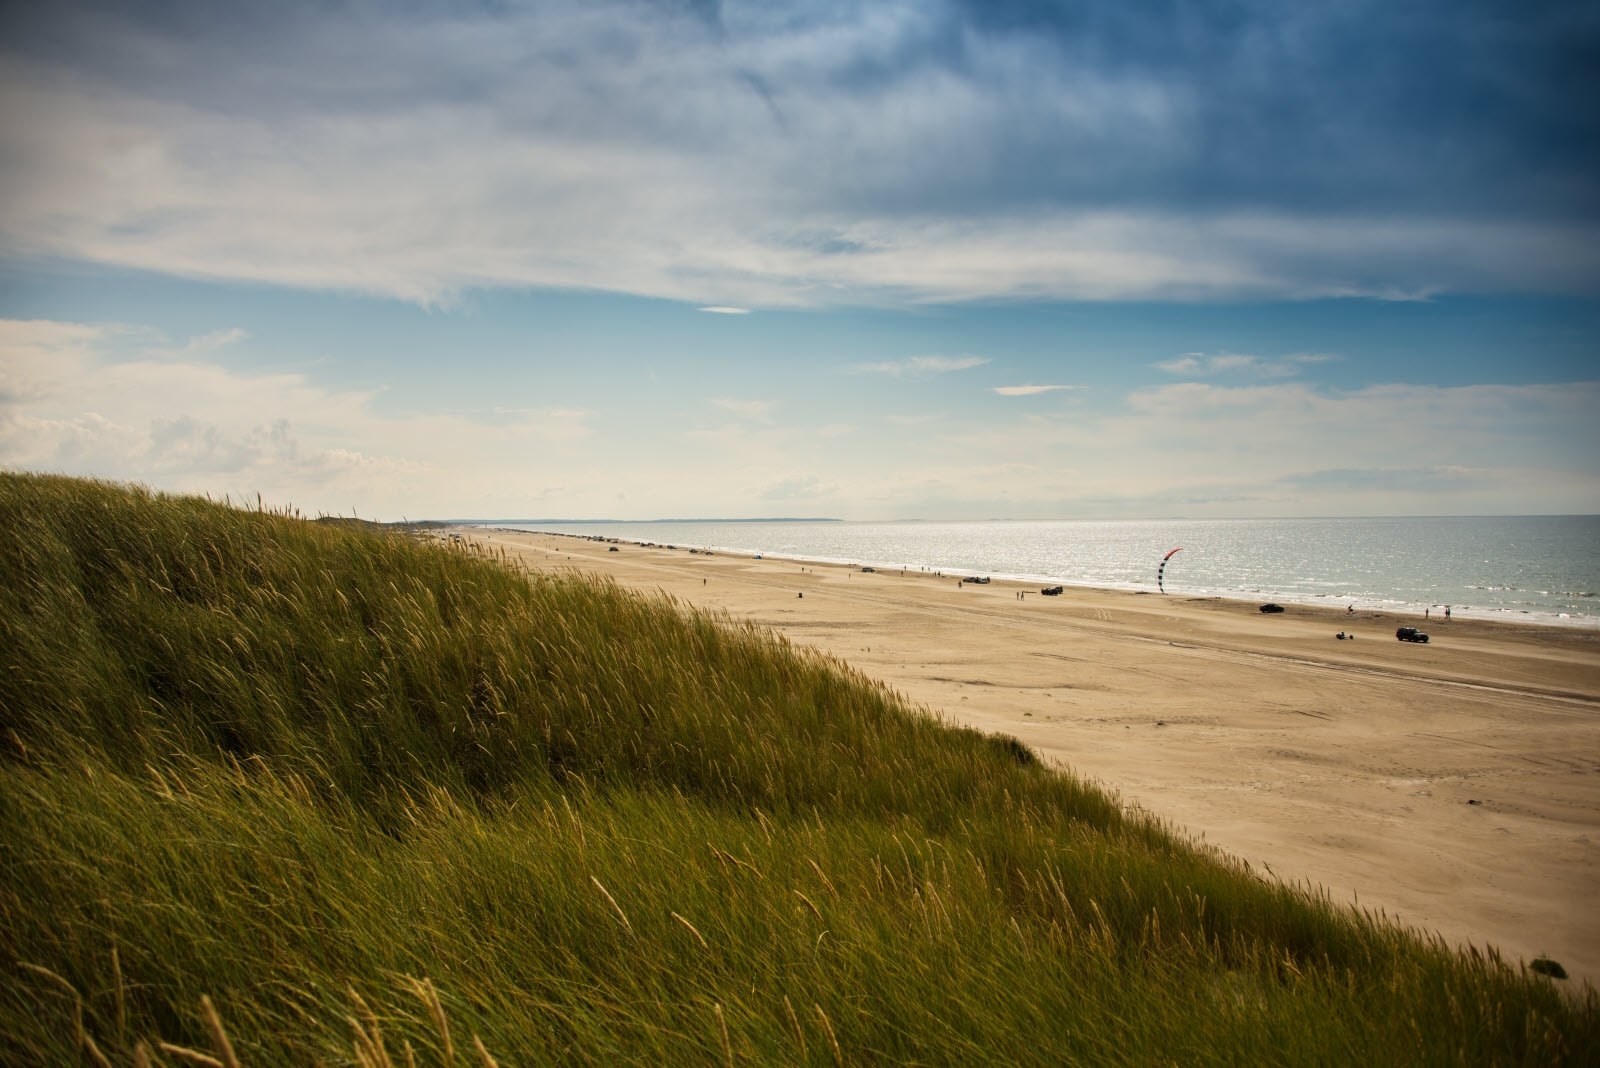 The Jammer bay beach between Saltum Strand and Blokhus in Jutland, Denmark